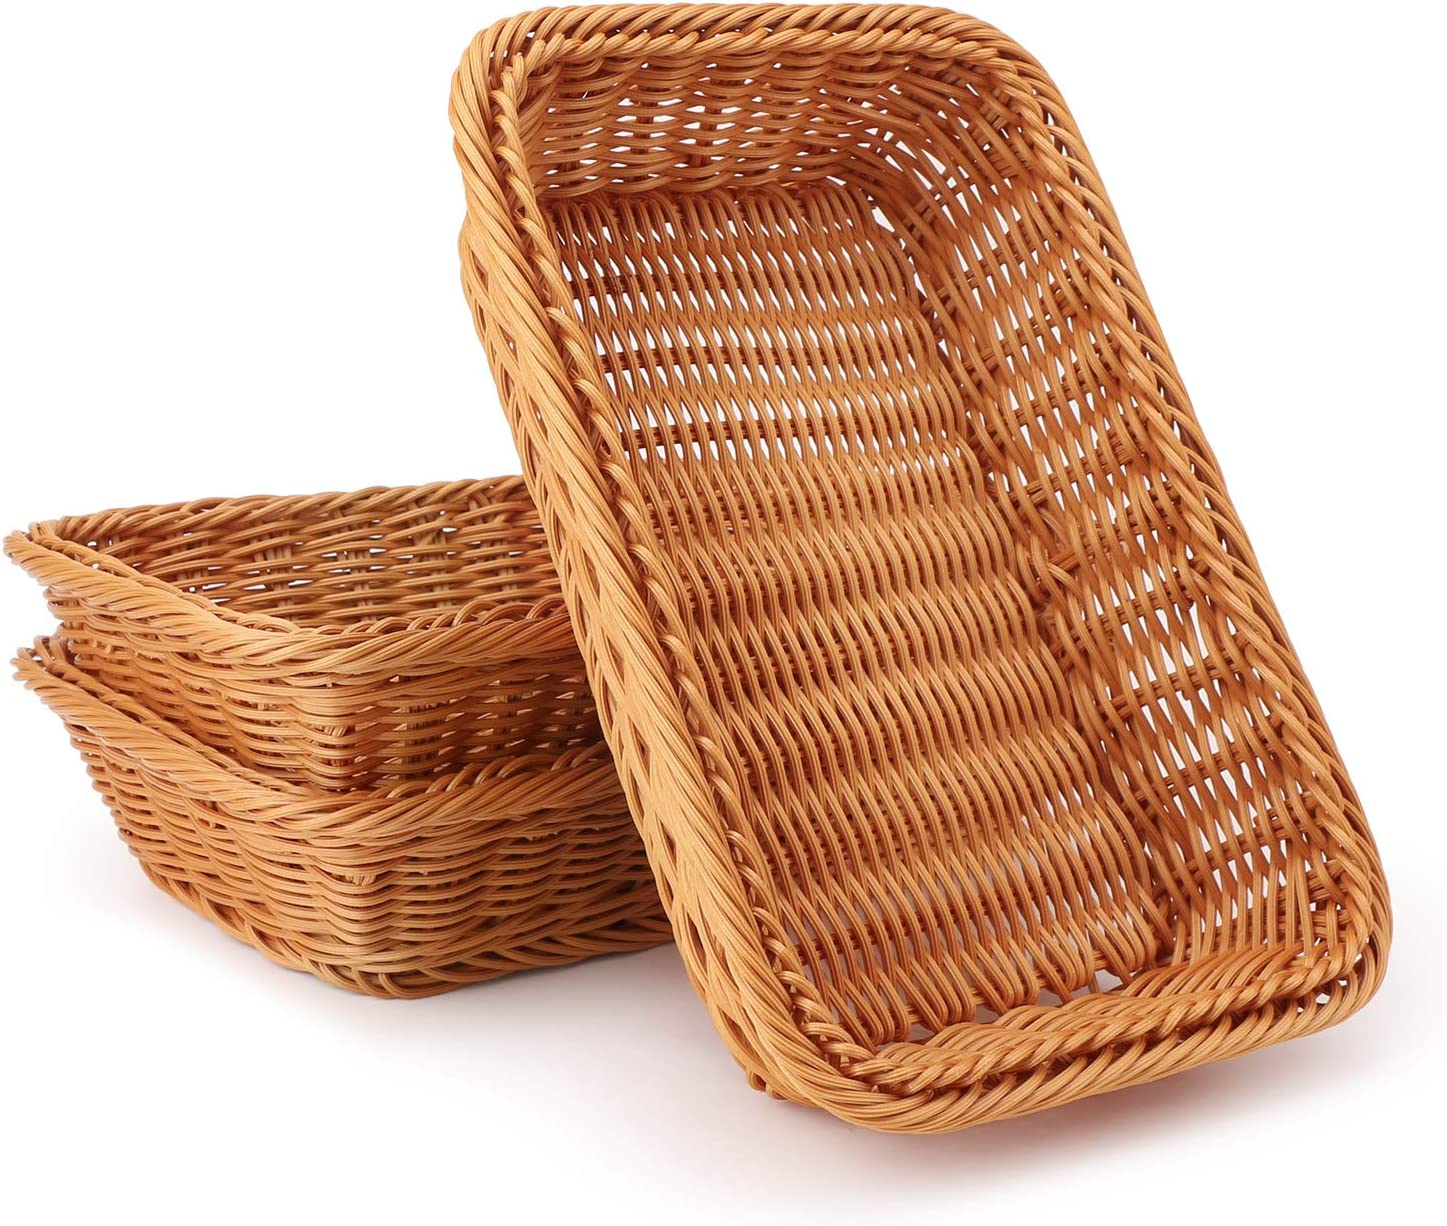 Wicker Bread Basket Eusoar 11 8 X 7 9 X 2 4 3pcs Tabletop Food Serving Baskets Trays Bread Proofing Basket Food Fruit Vegetables Sundries Storage Basket For Restaurant Bakery Family Party Home Improvement